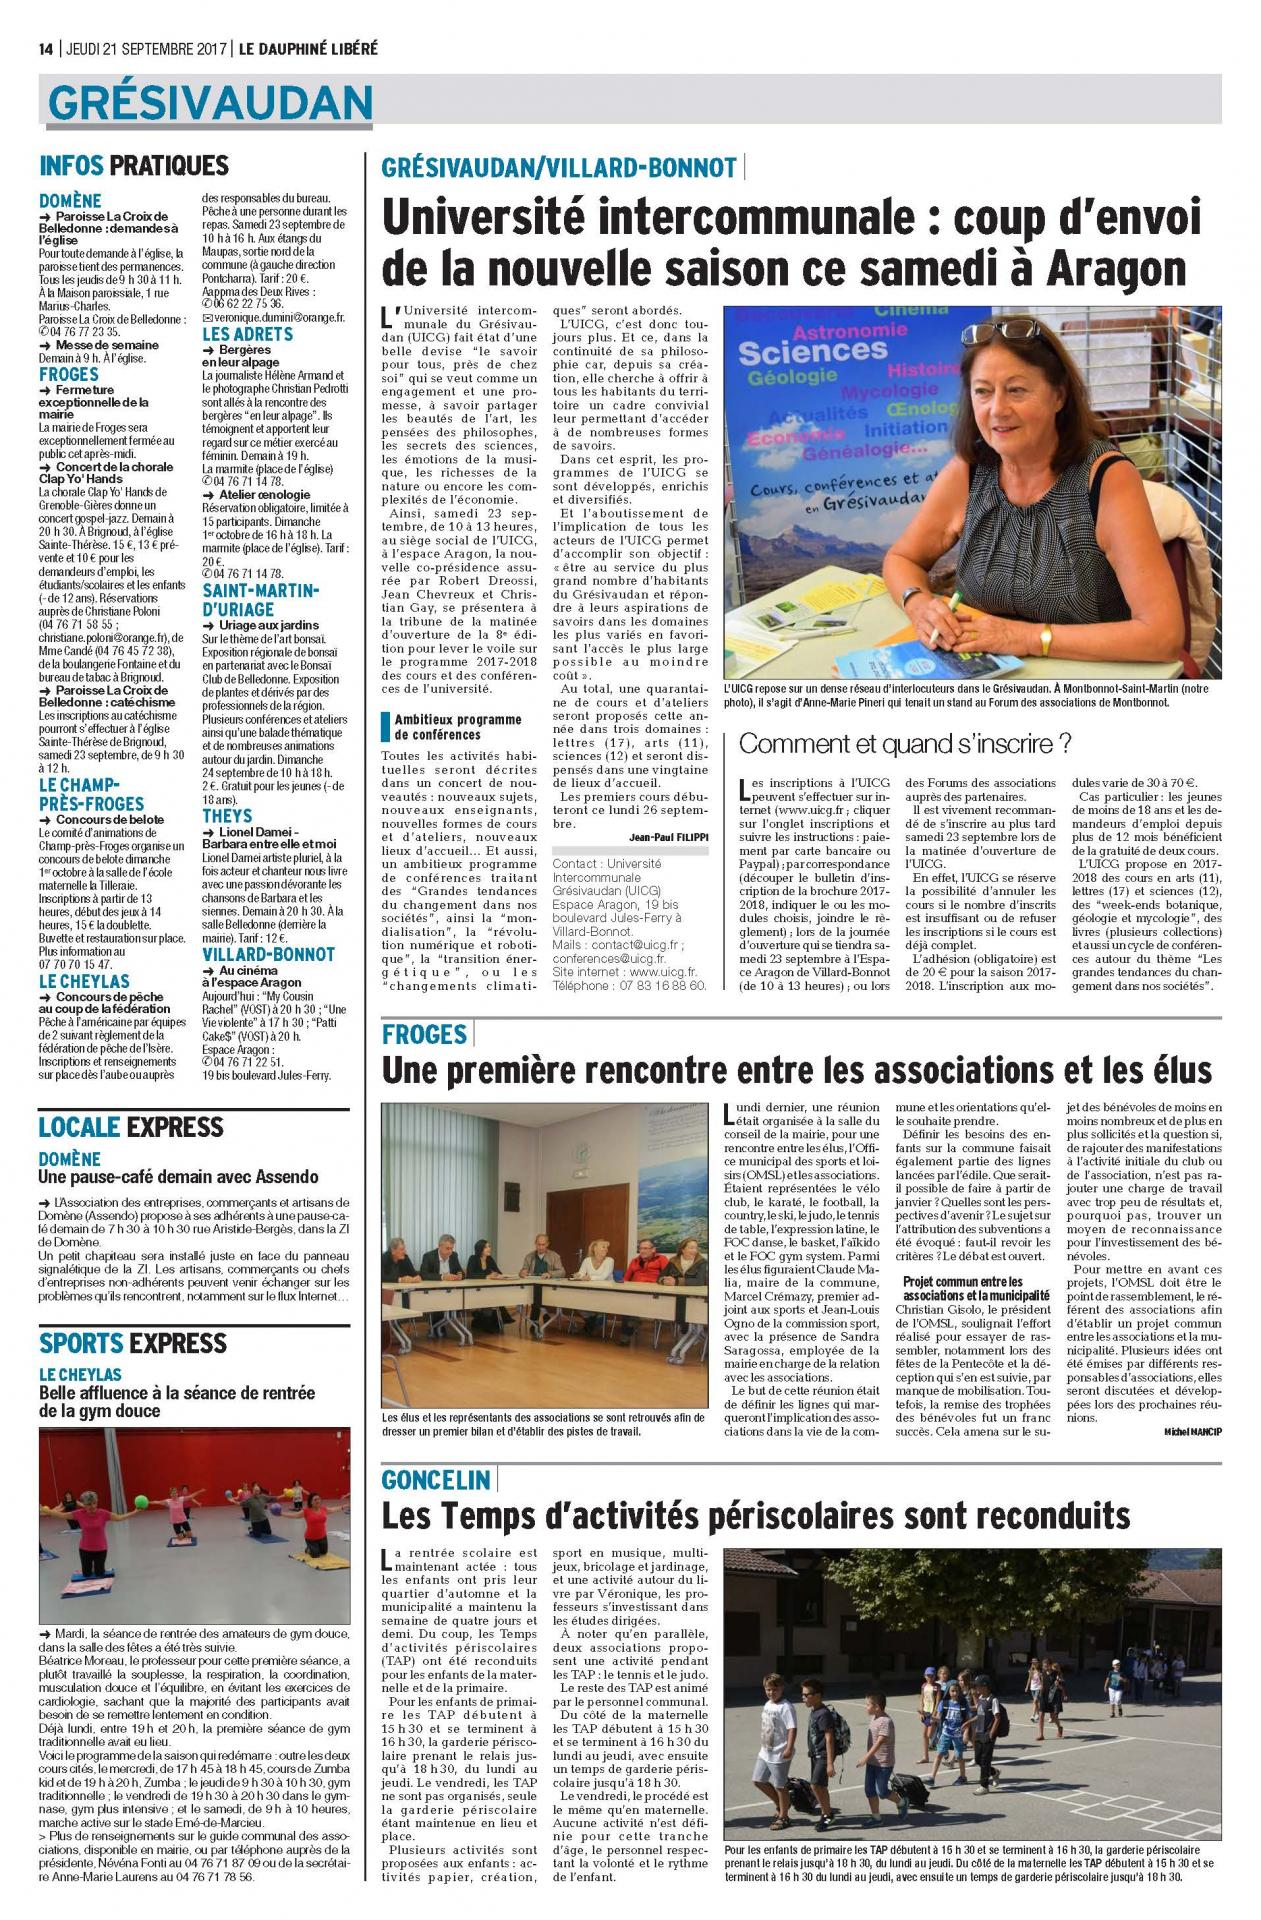 Dl 2017 09 21 page 14 edition grenoble gresivaudan